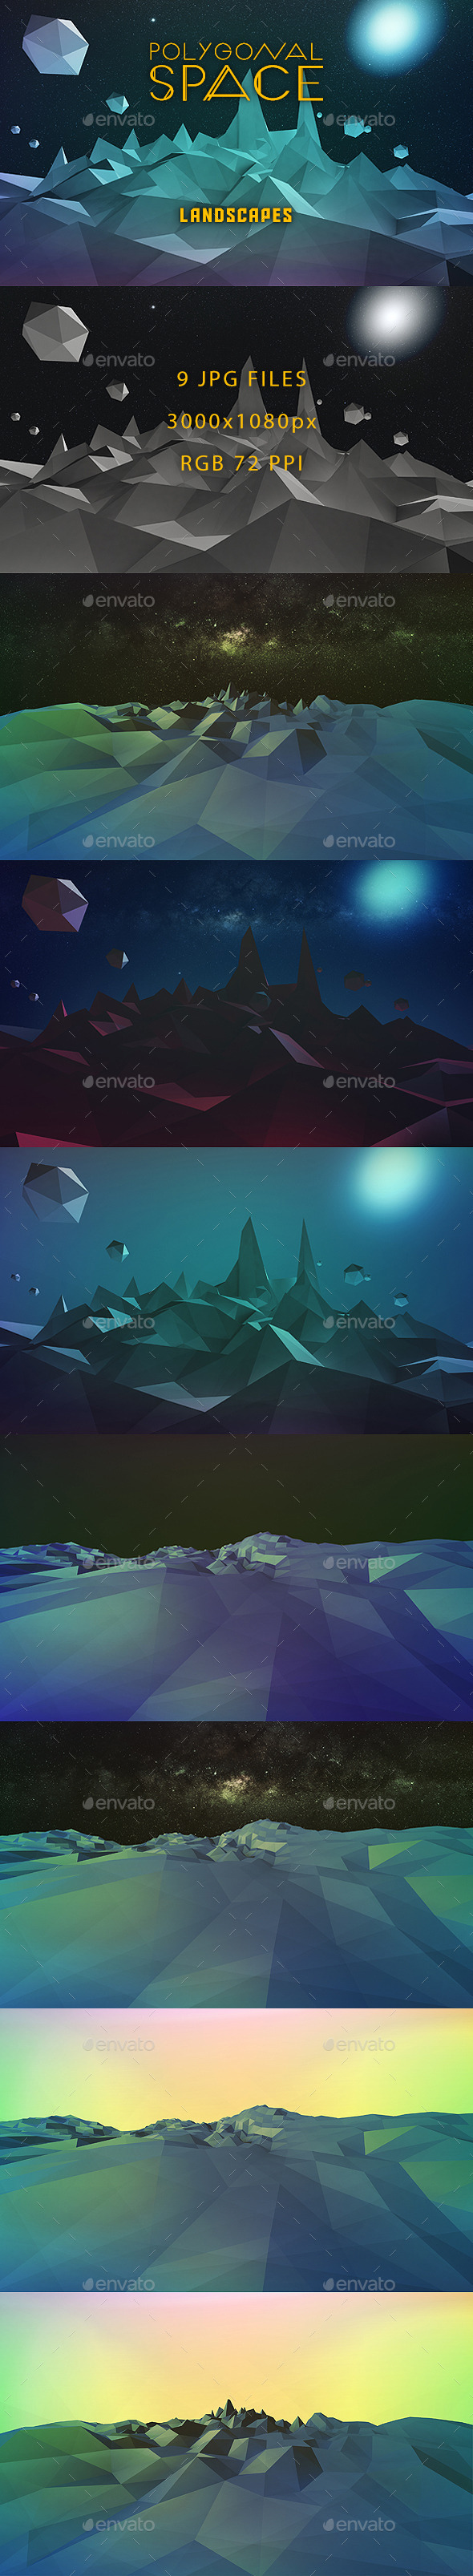 GraphicRiver Low Poly Space Landscapes 11004433